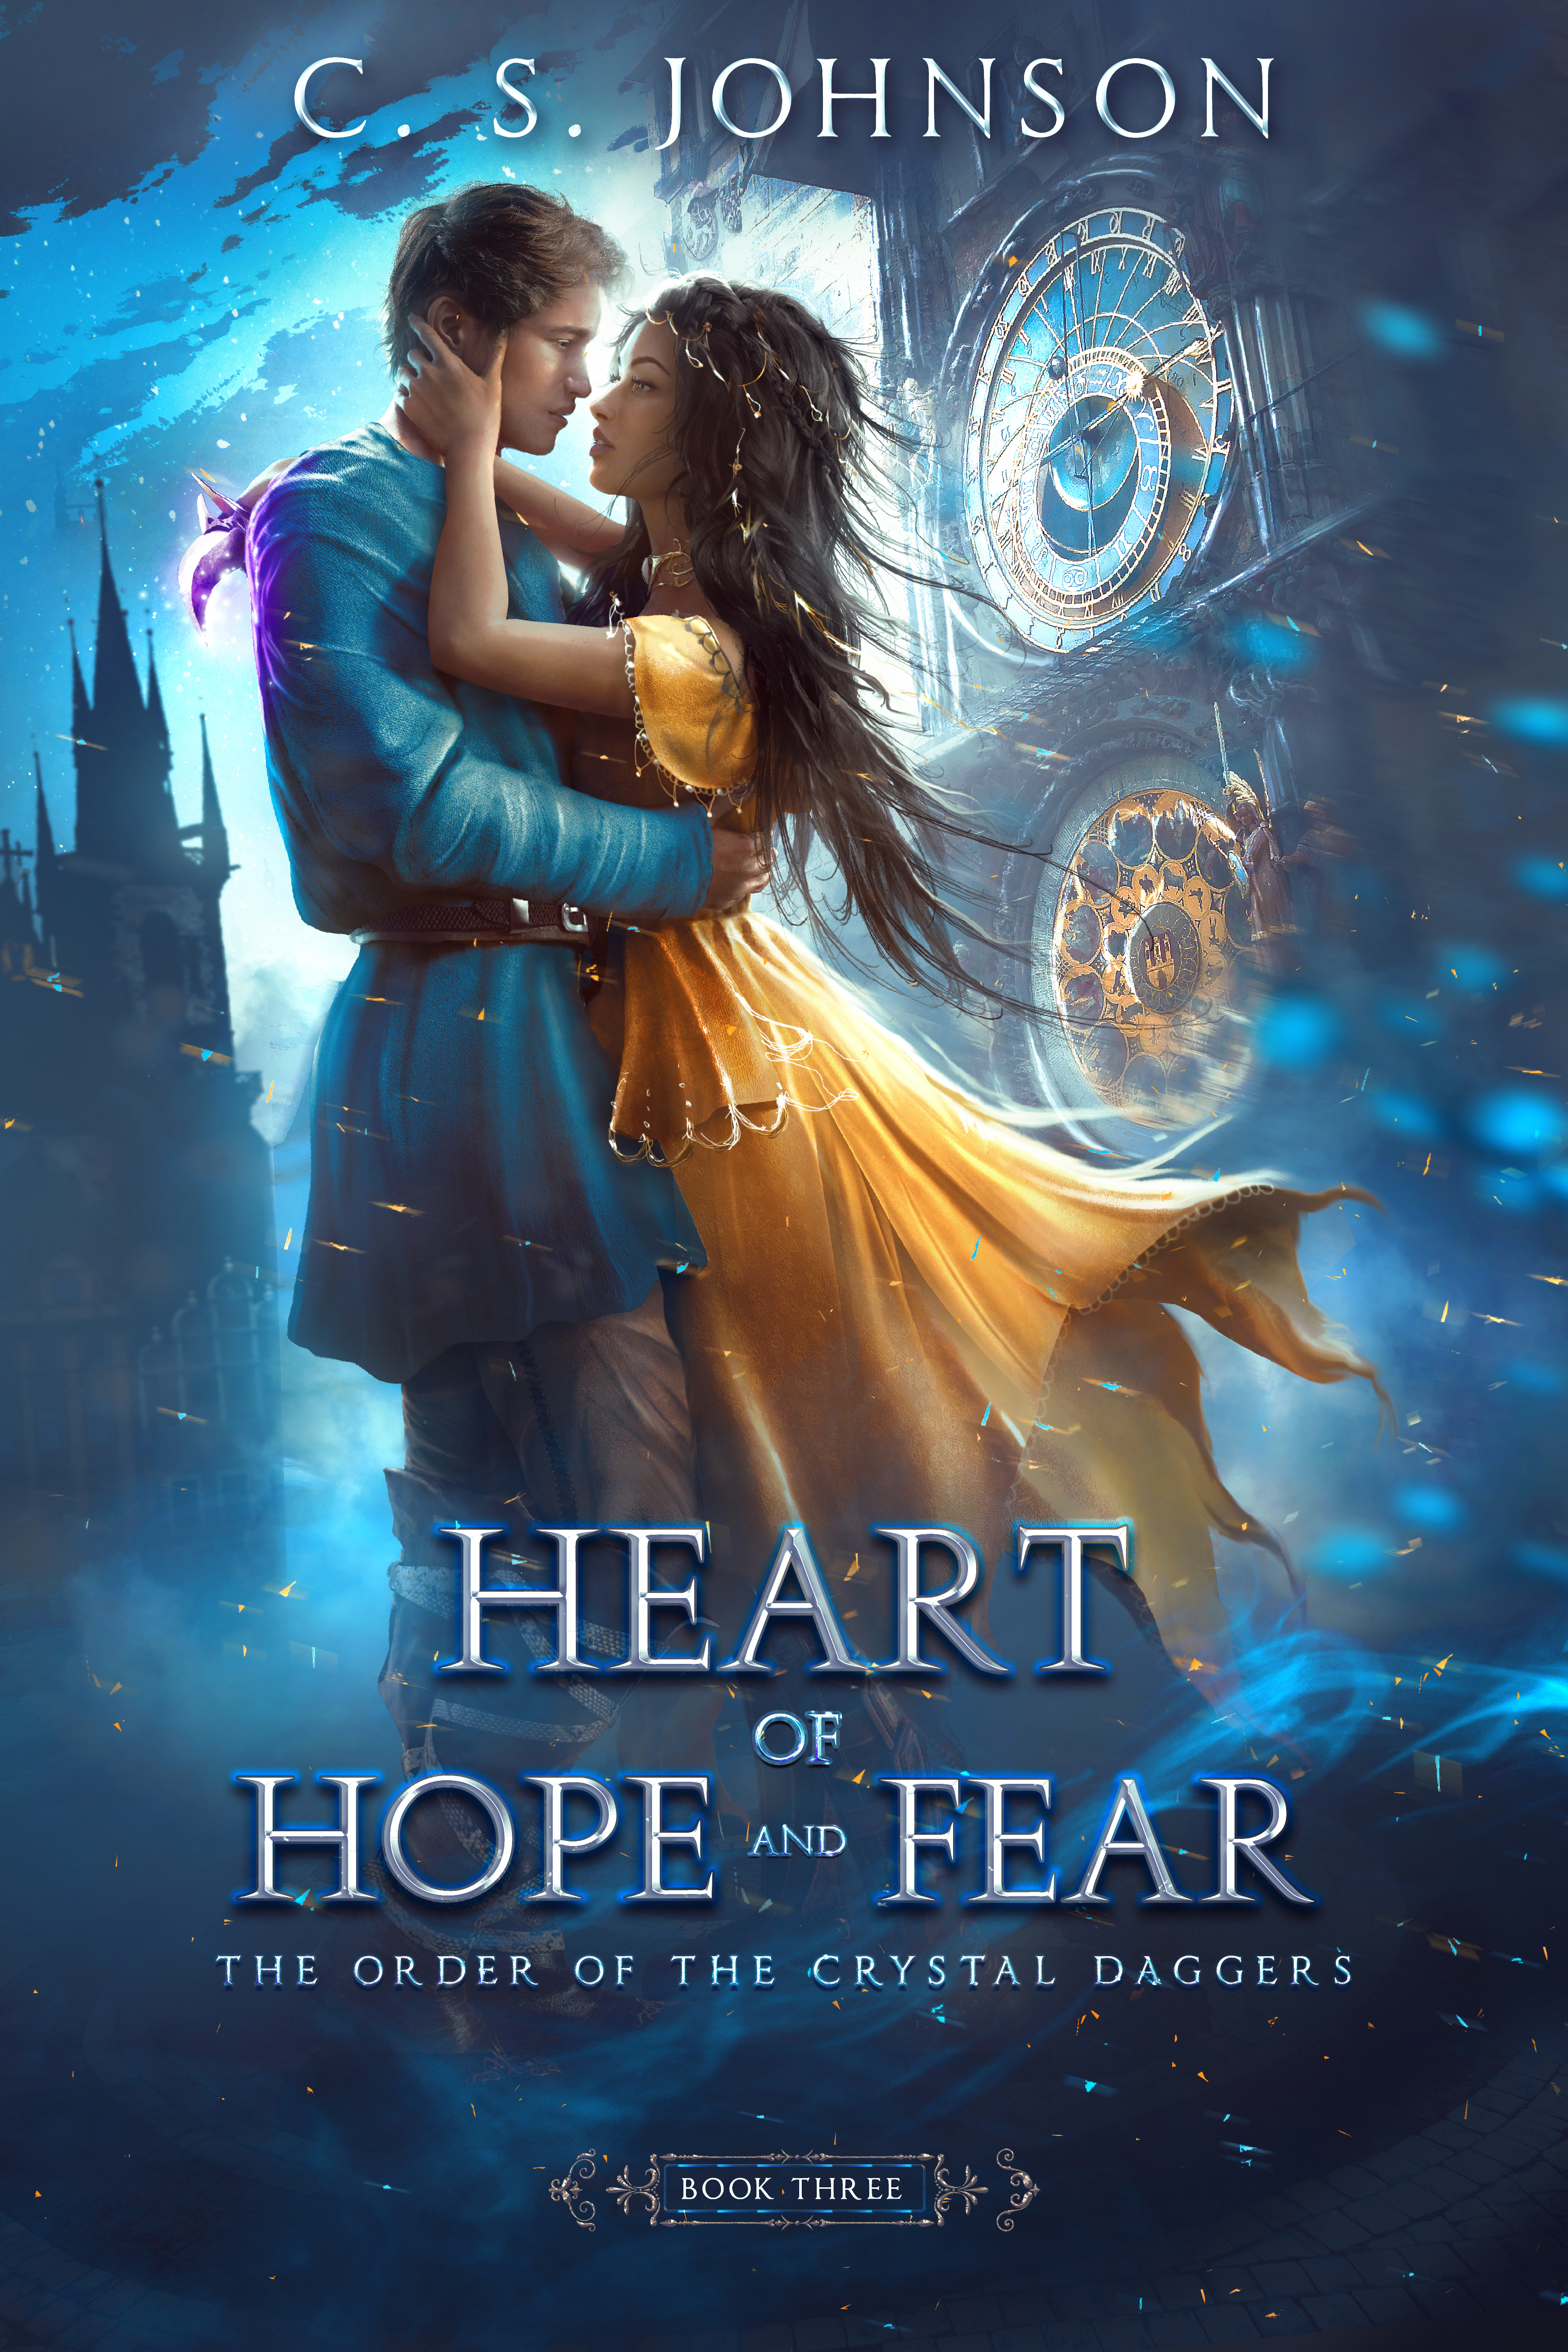 3 Heart of Hope and Fear front cover